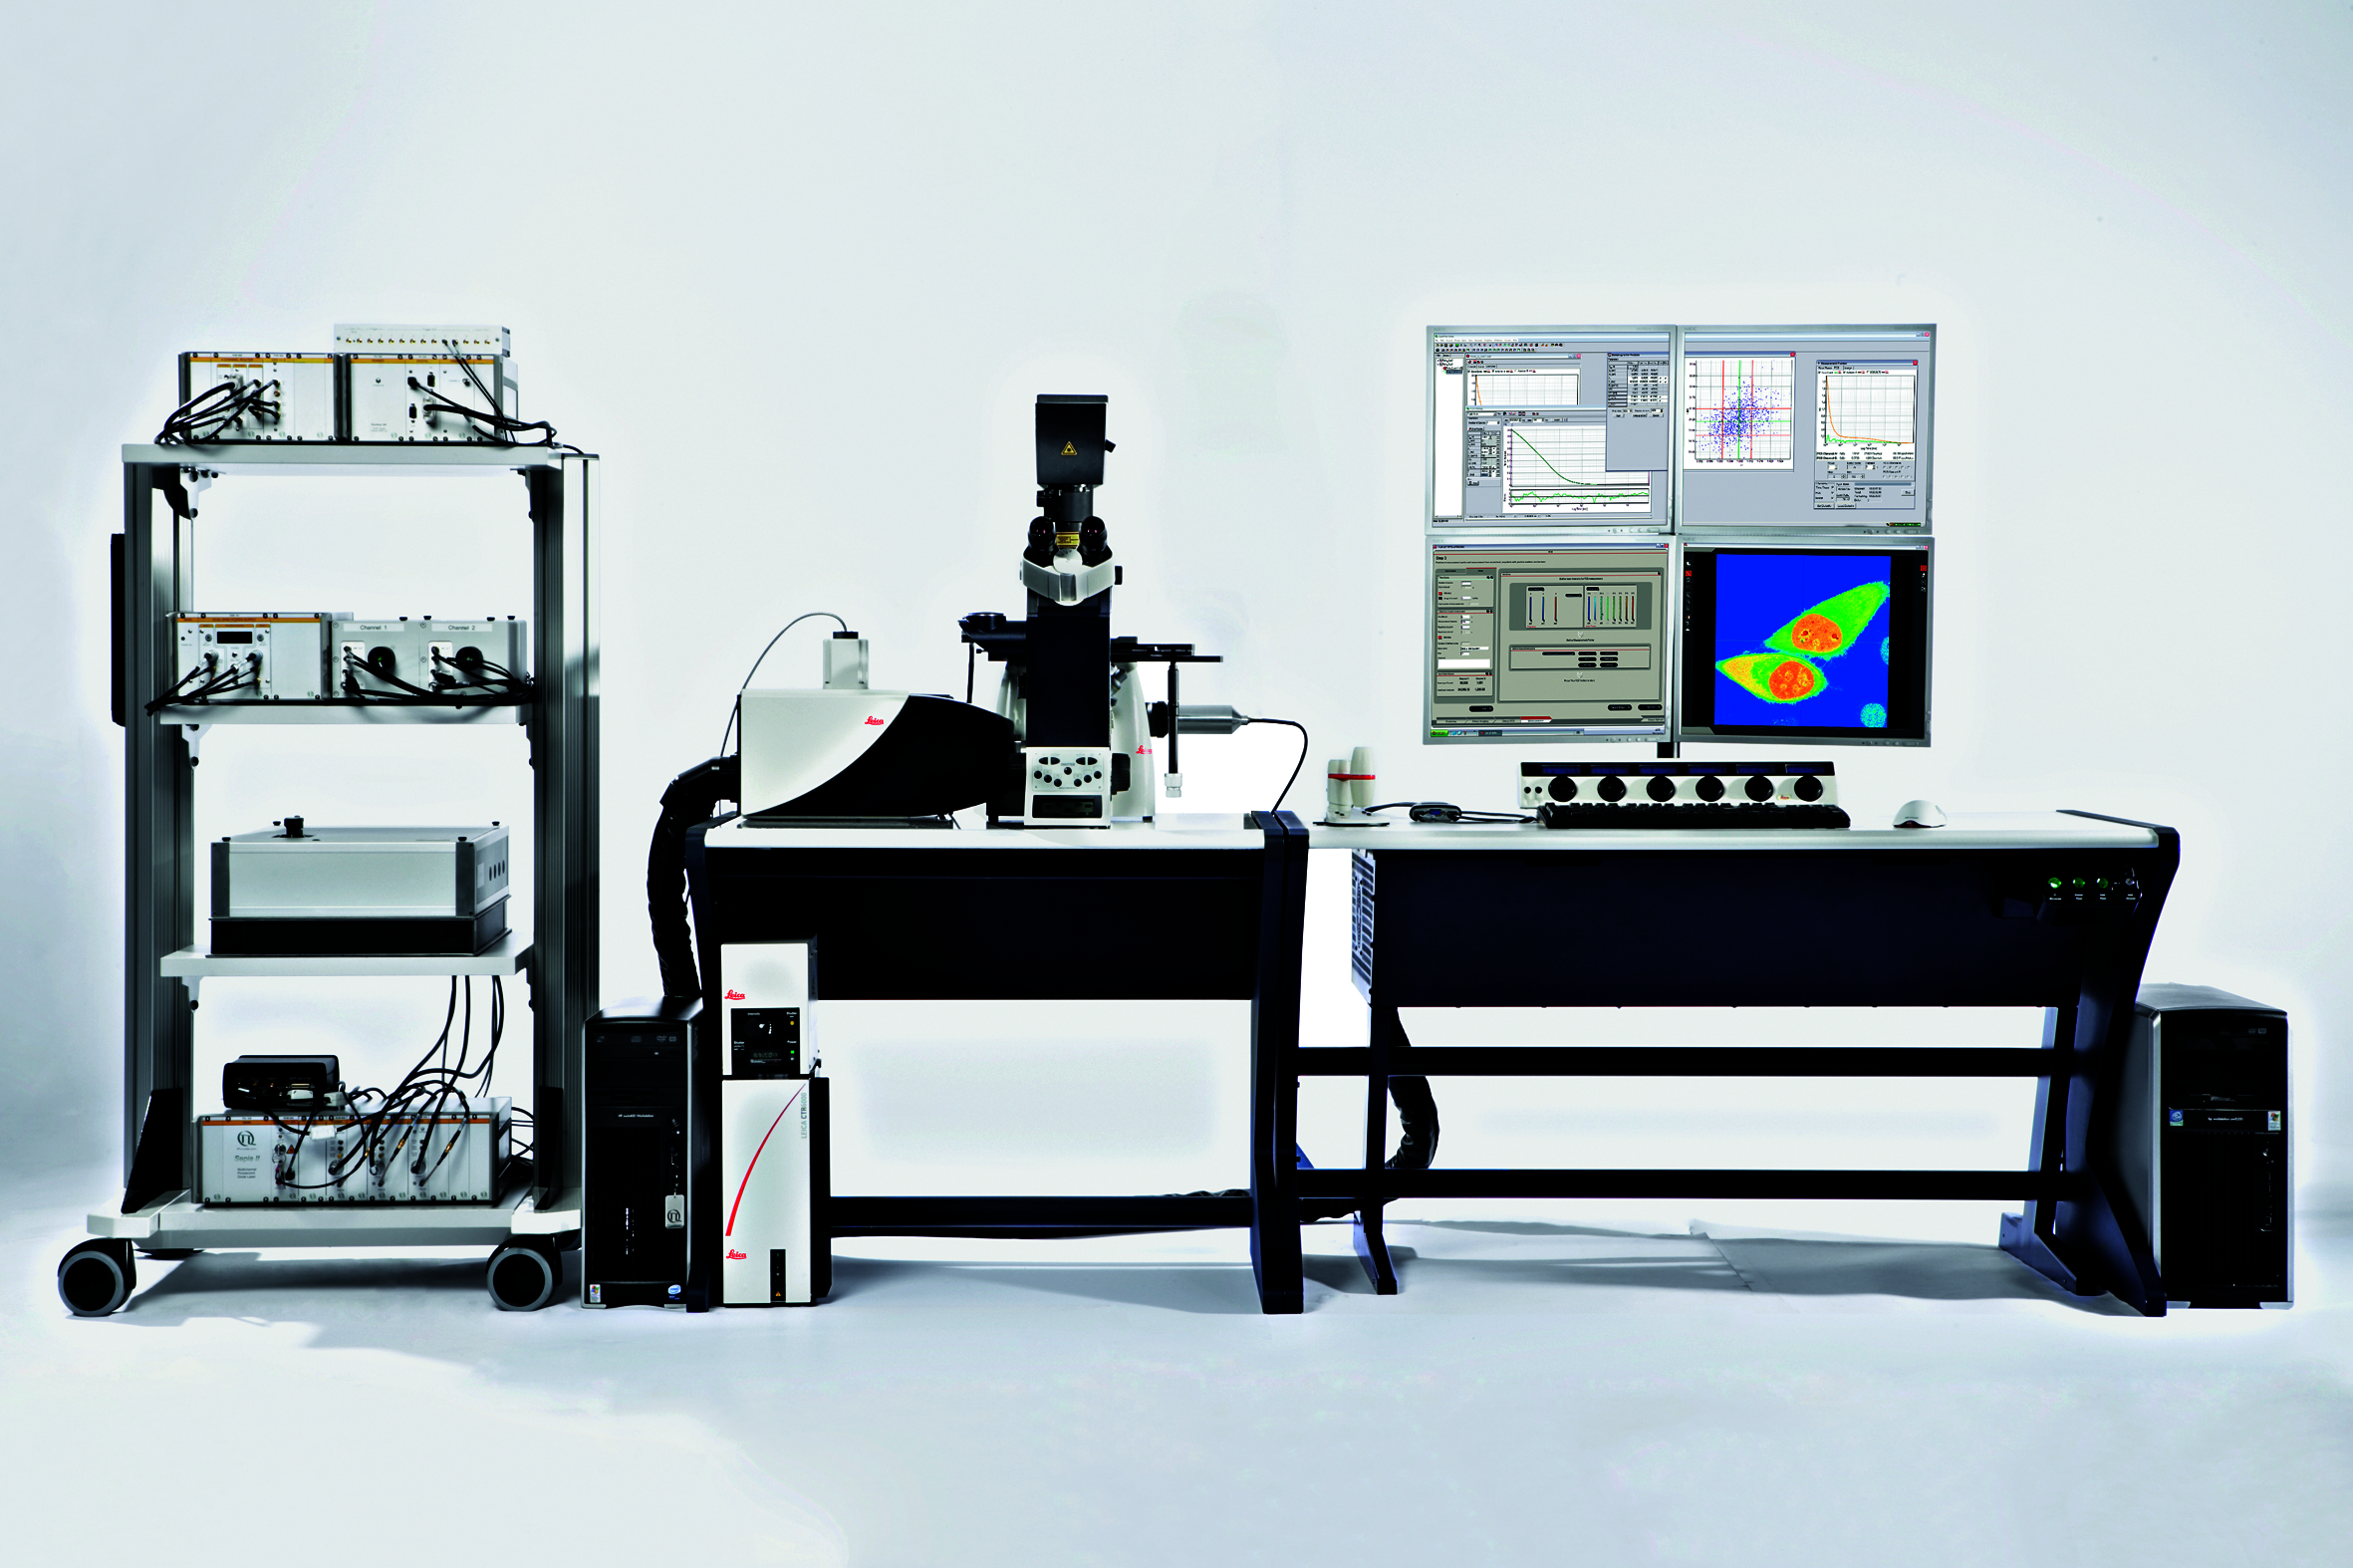 Leica TCS SMD Single Molecule Detection System